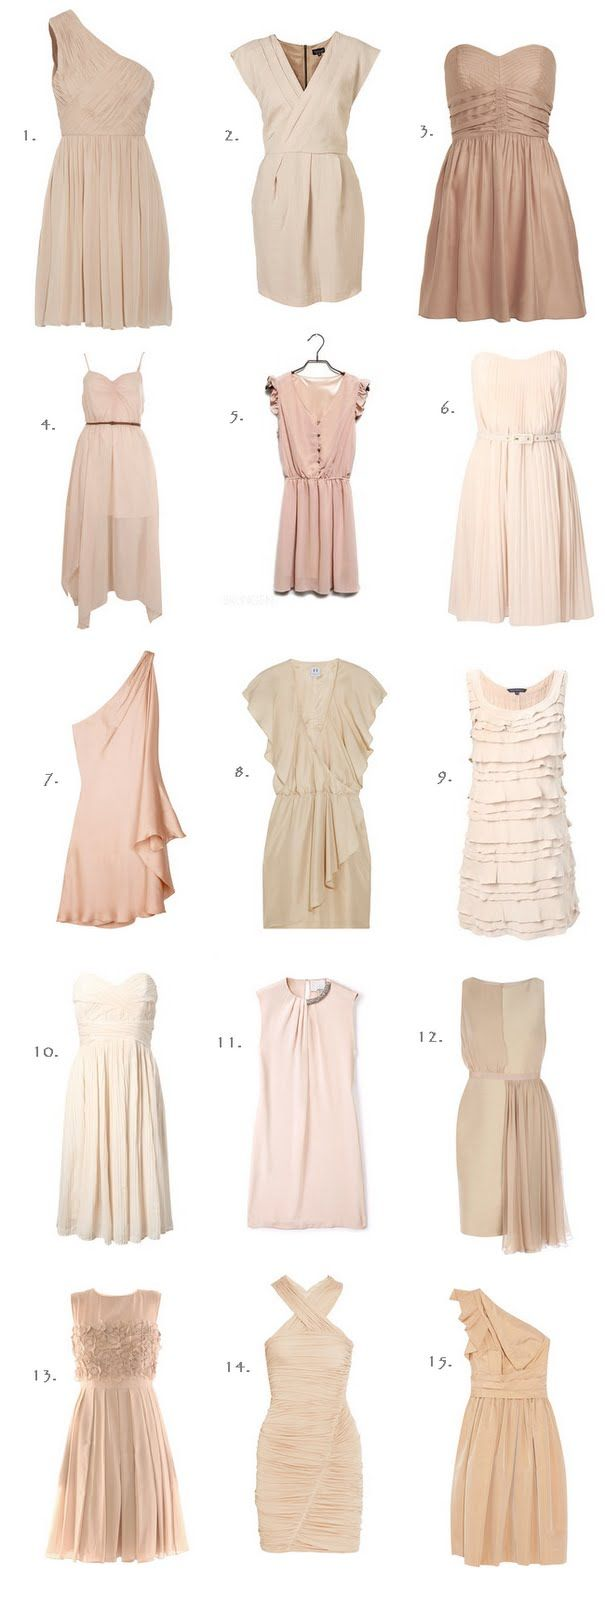 Nude/blush bridesmaid dresses